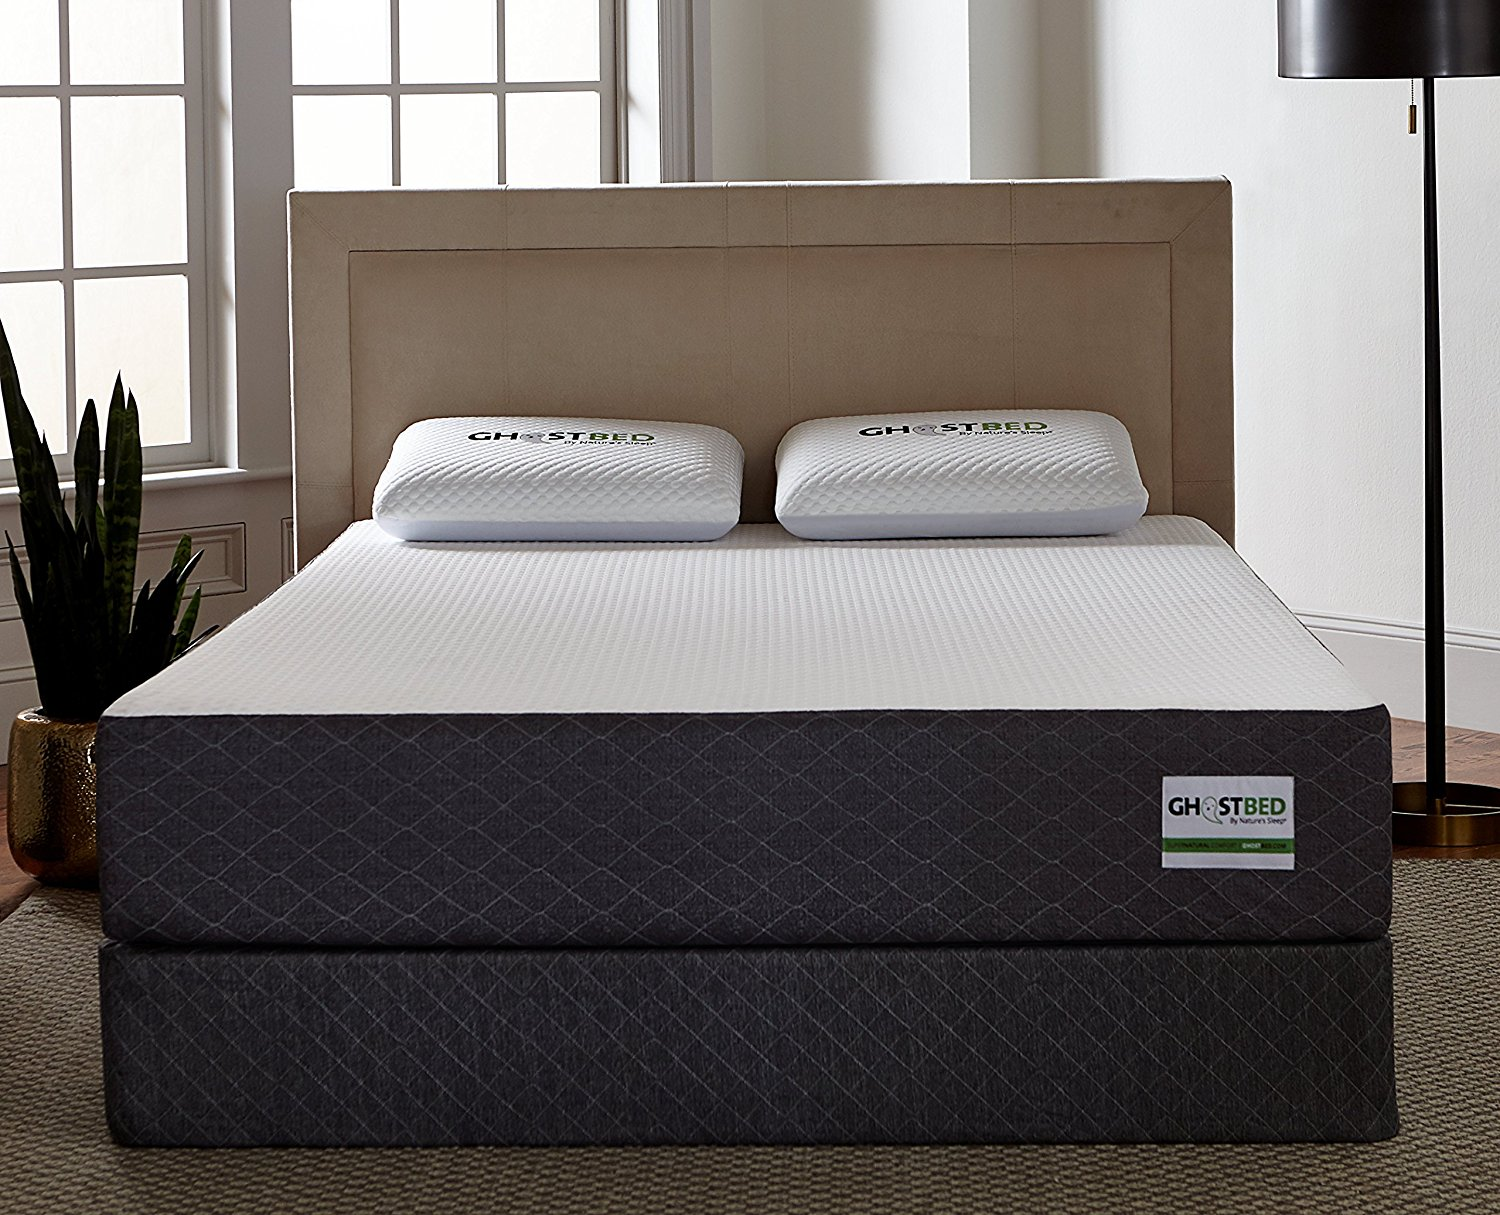 Purple Mattress Review Ghostbed Vs Purple 2019 Mattress Comparison Review Sleeping Ninjas